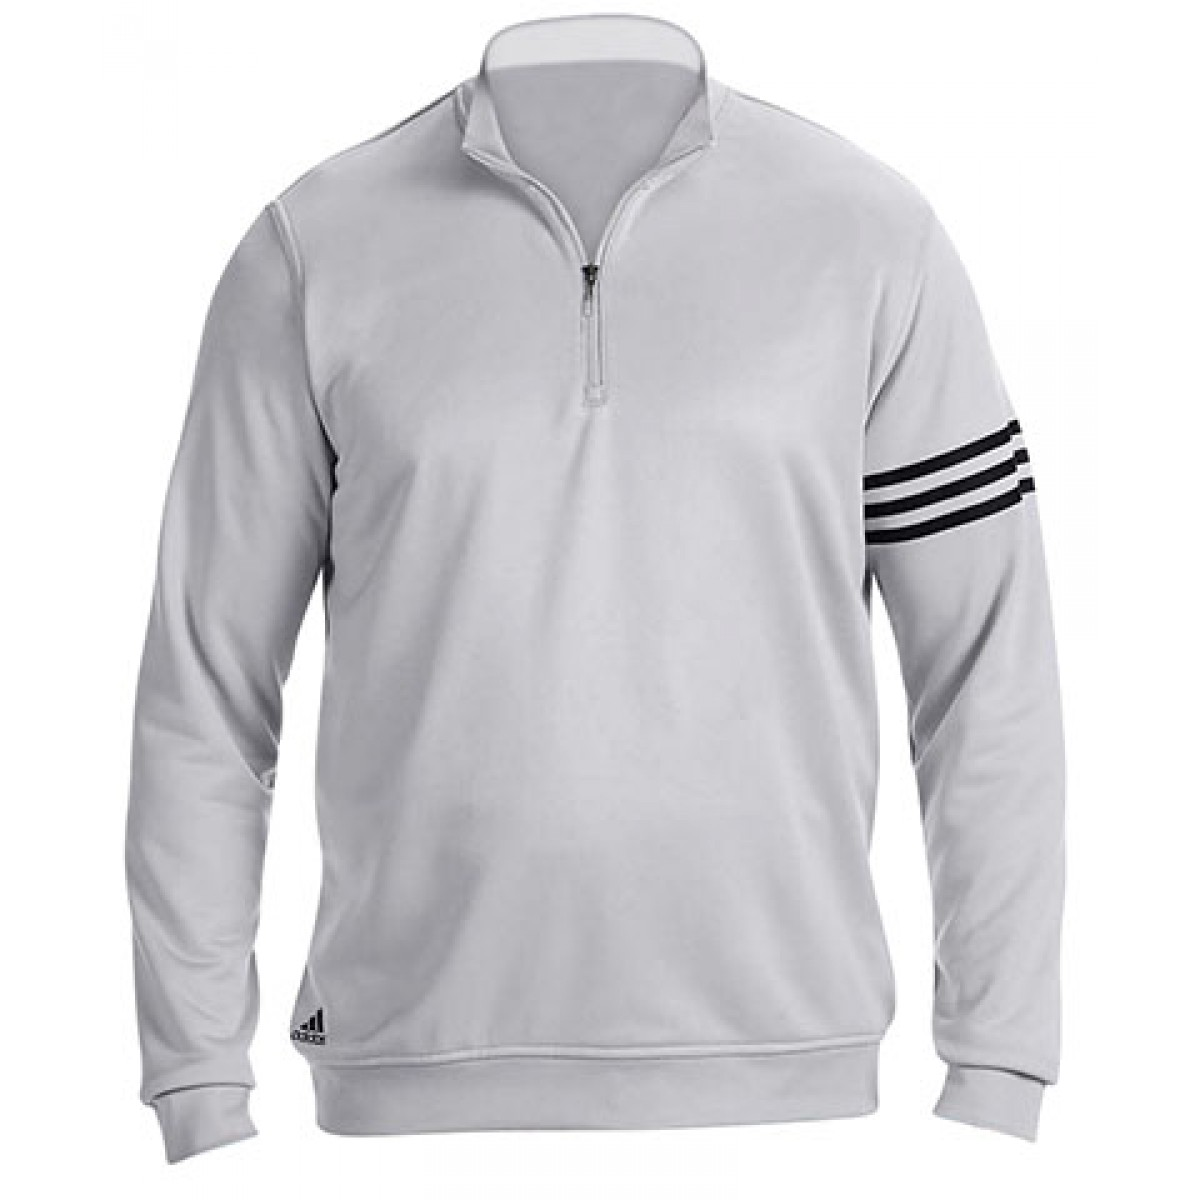 Adidas Men's 3-Stripes Pullover-Gray -XL